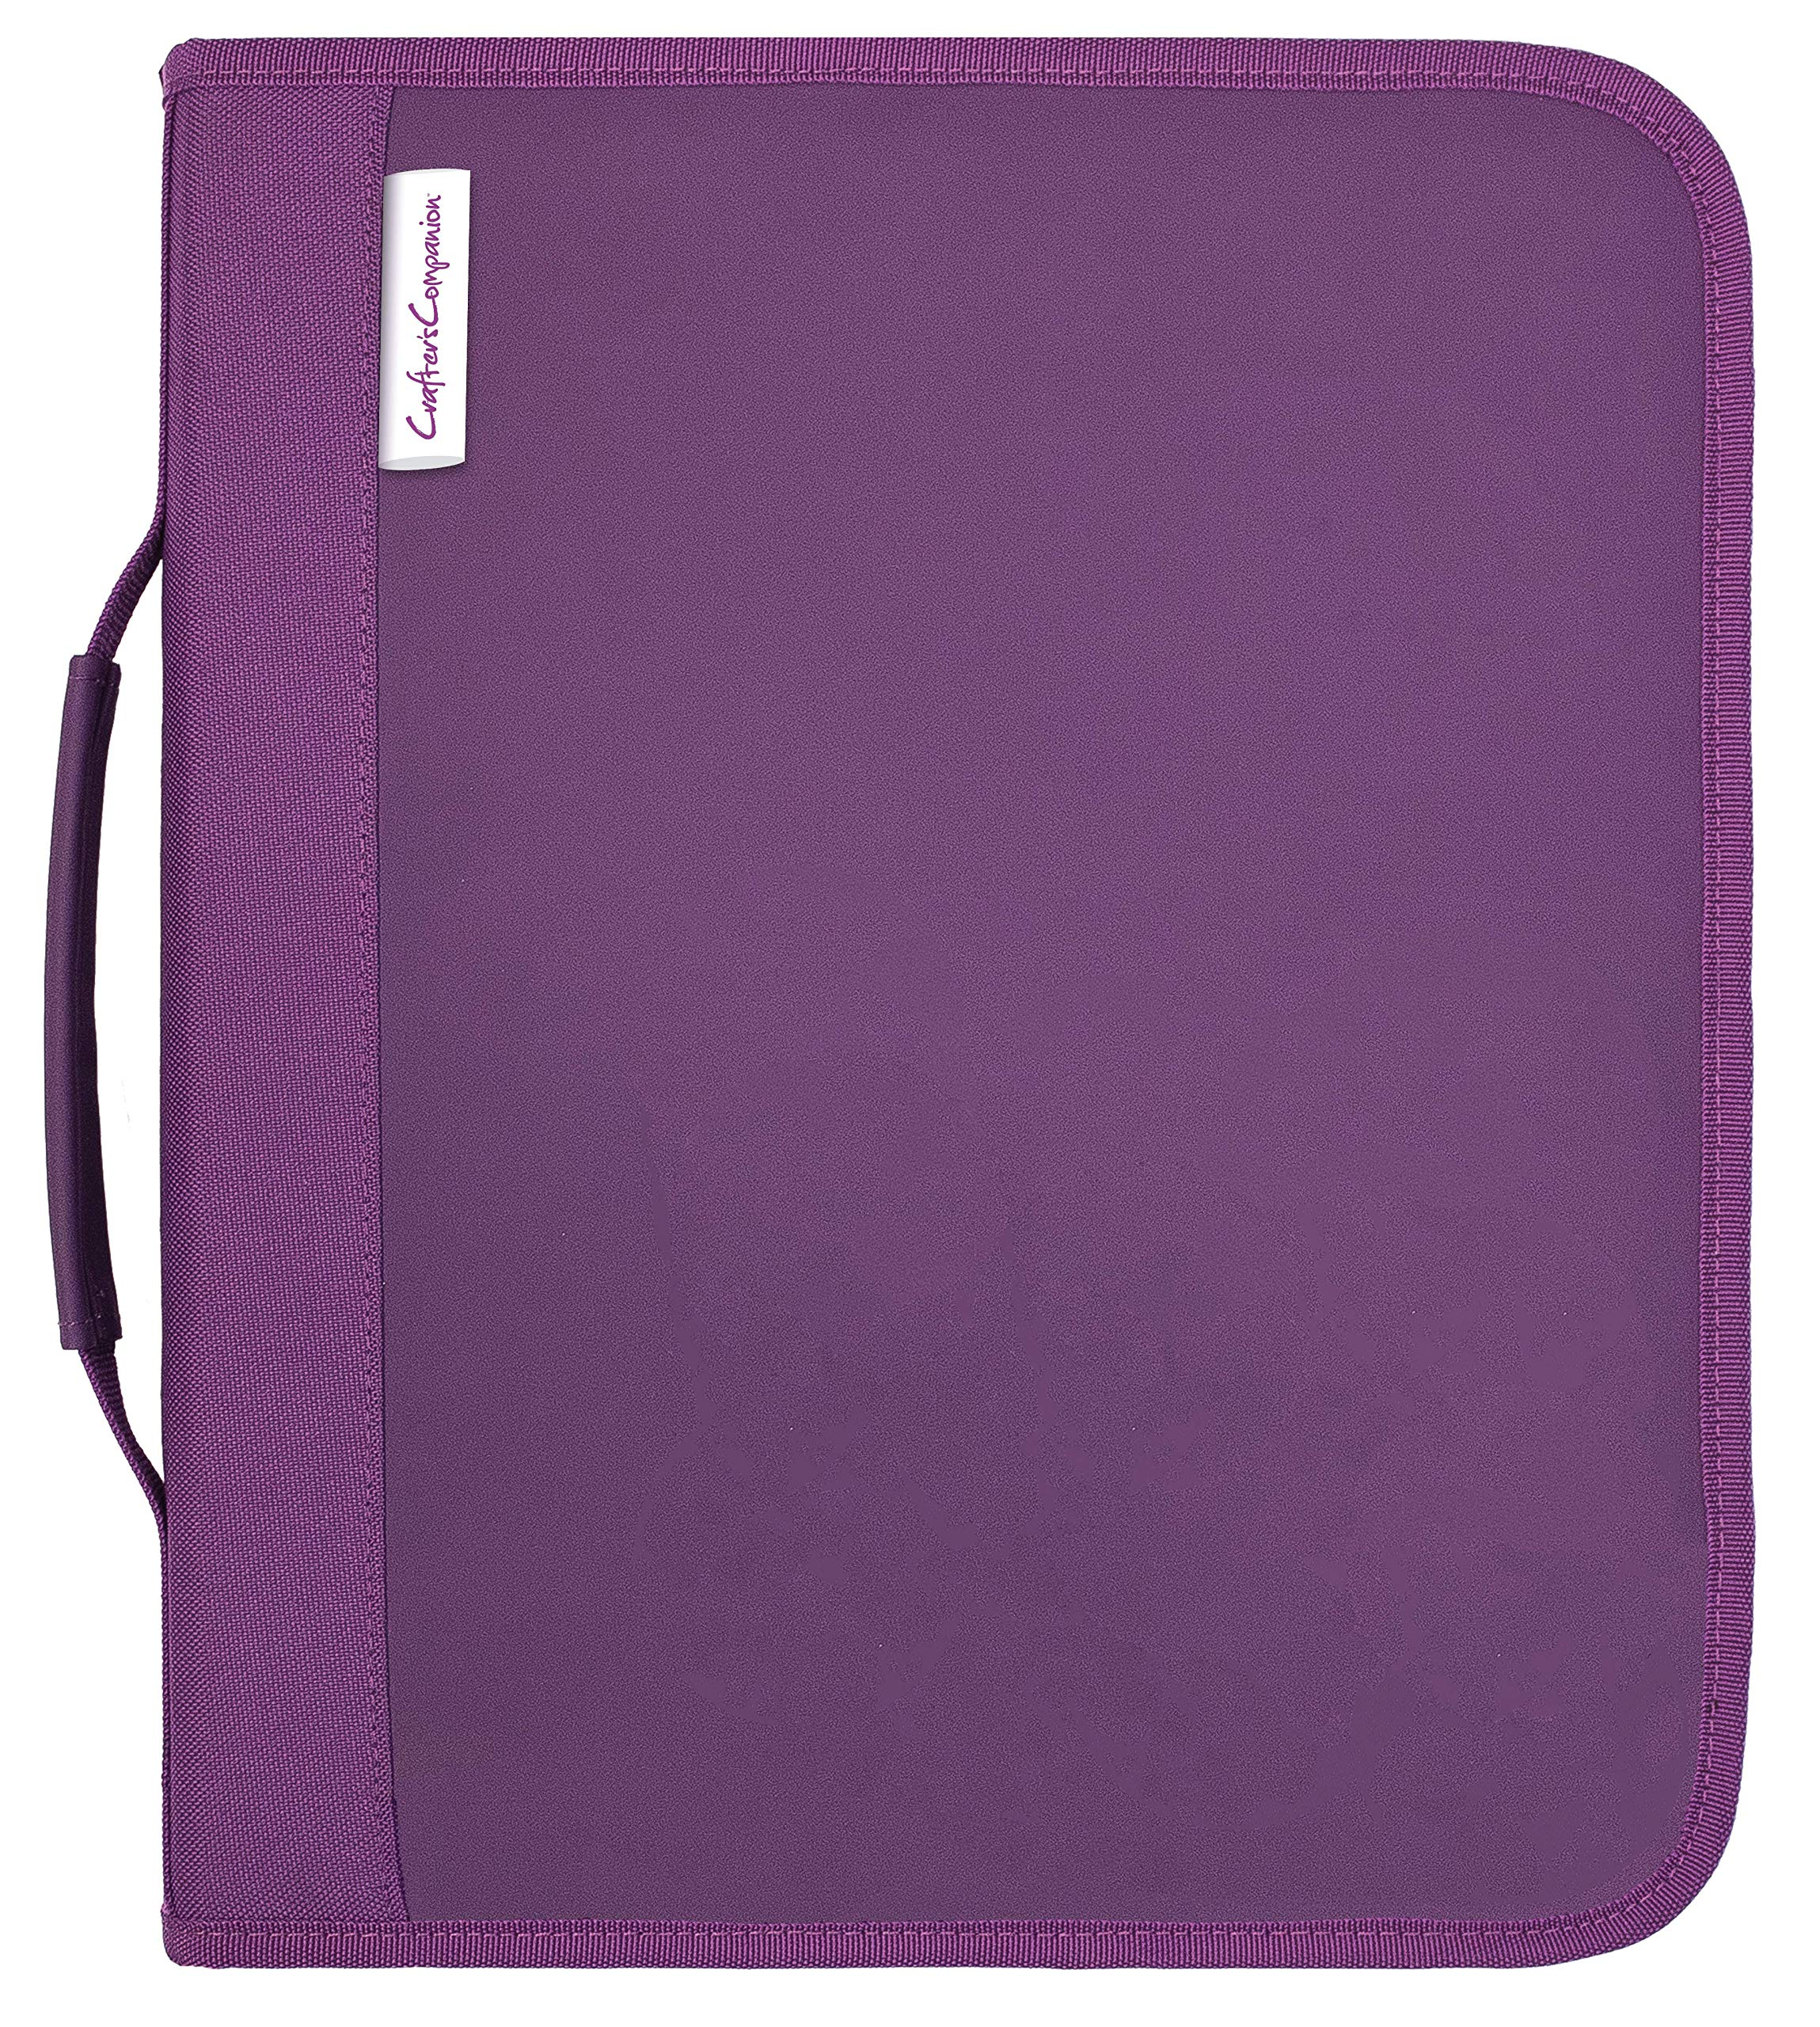 Crafter's Companion CC-STOR-DIE-L Folder-Large Die & Stamp Storage us:one Size Purple